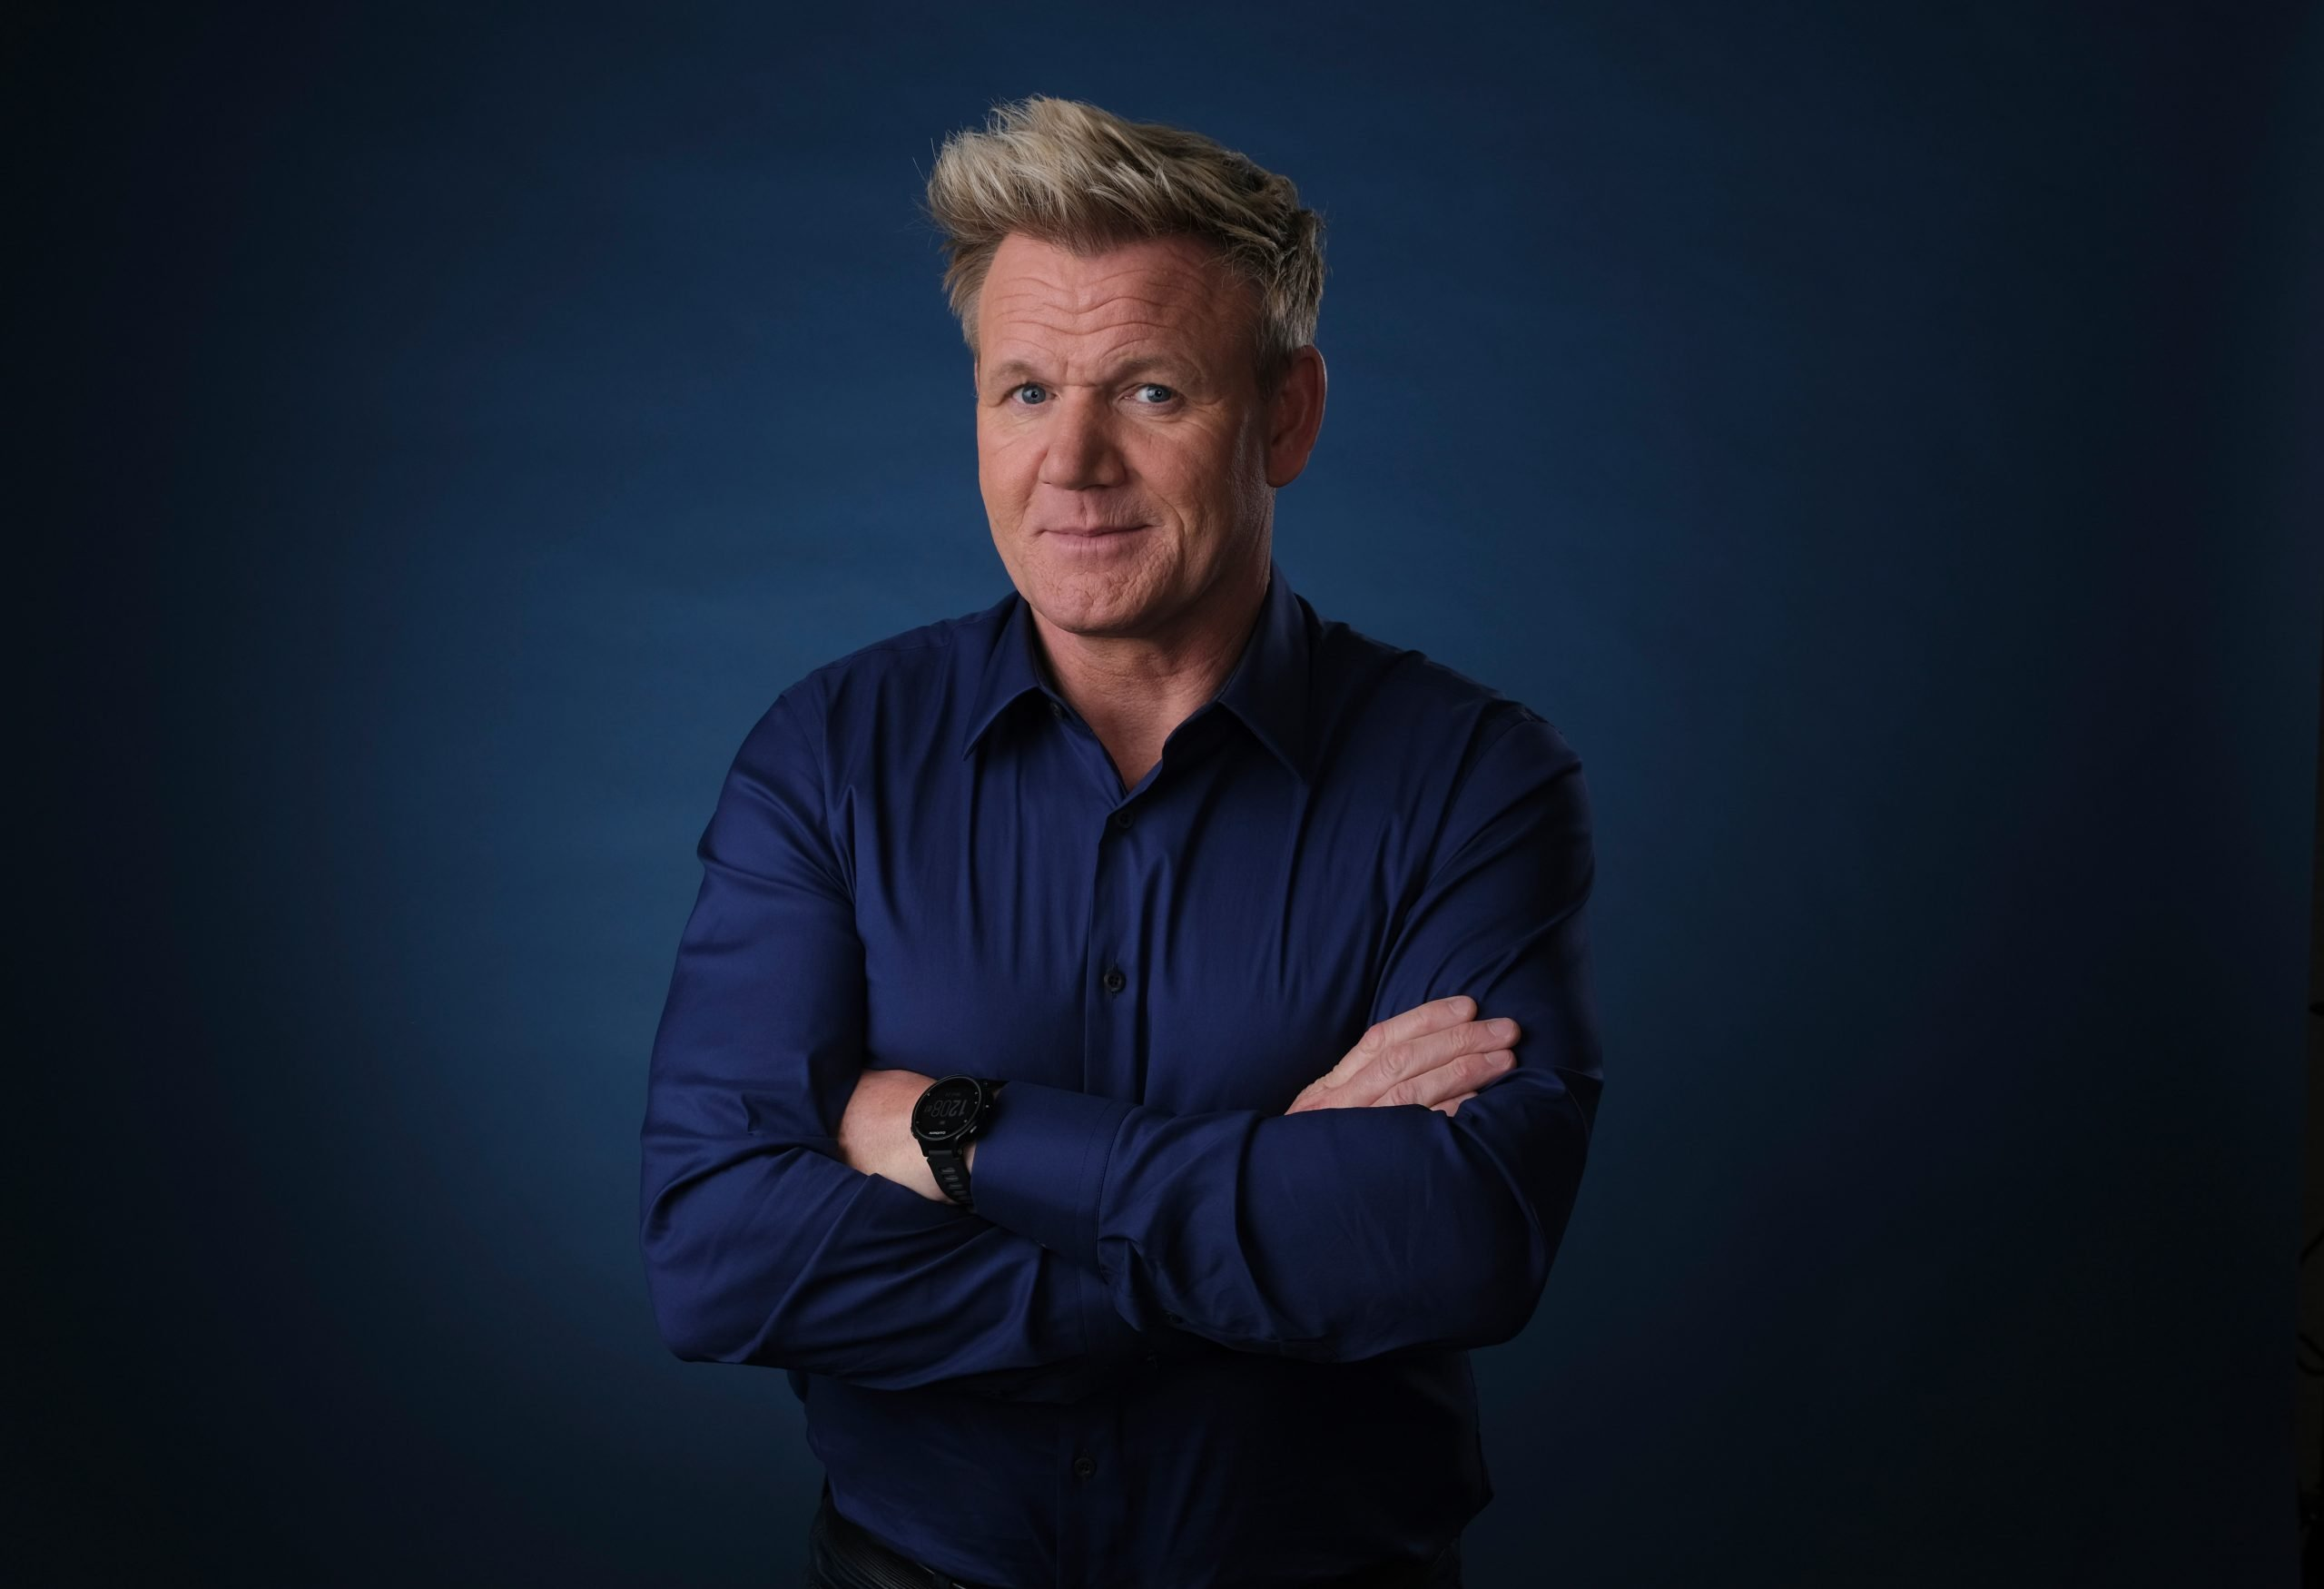 Interview: Ramsay's Revival